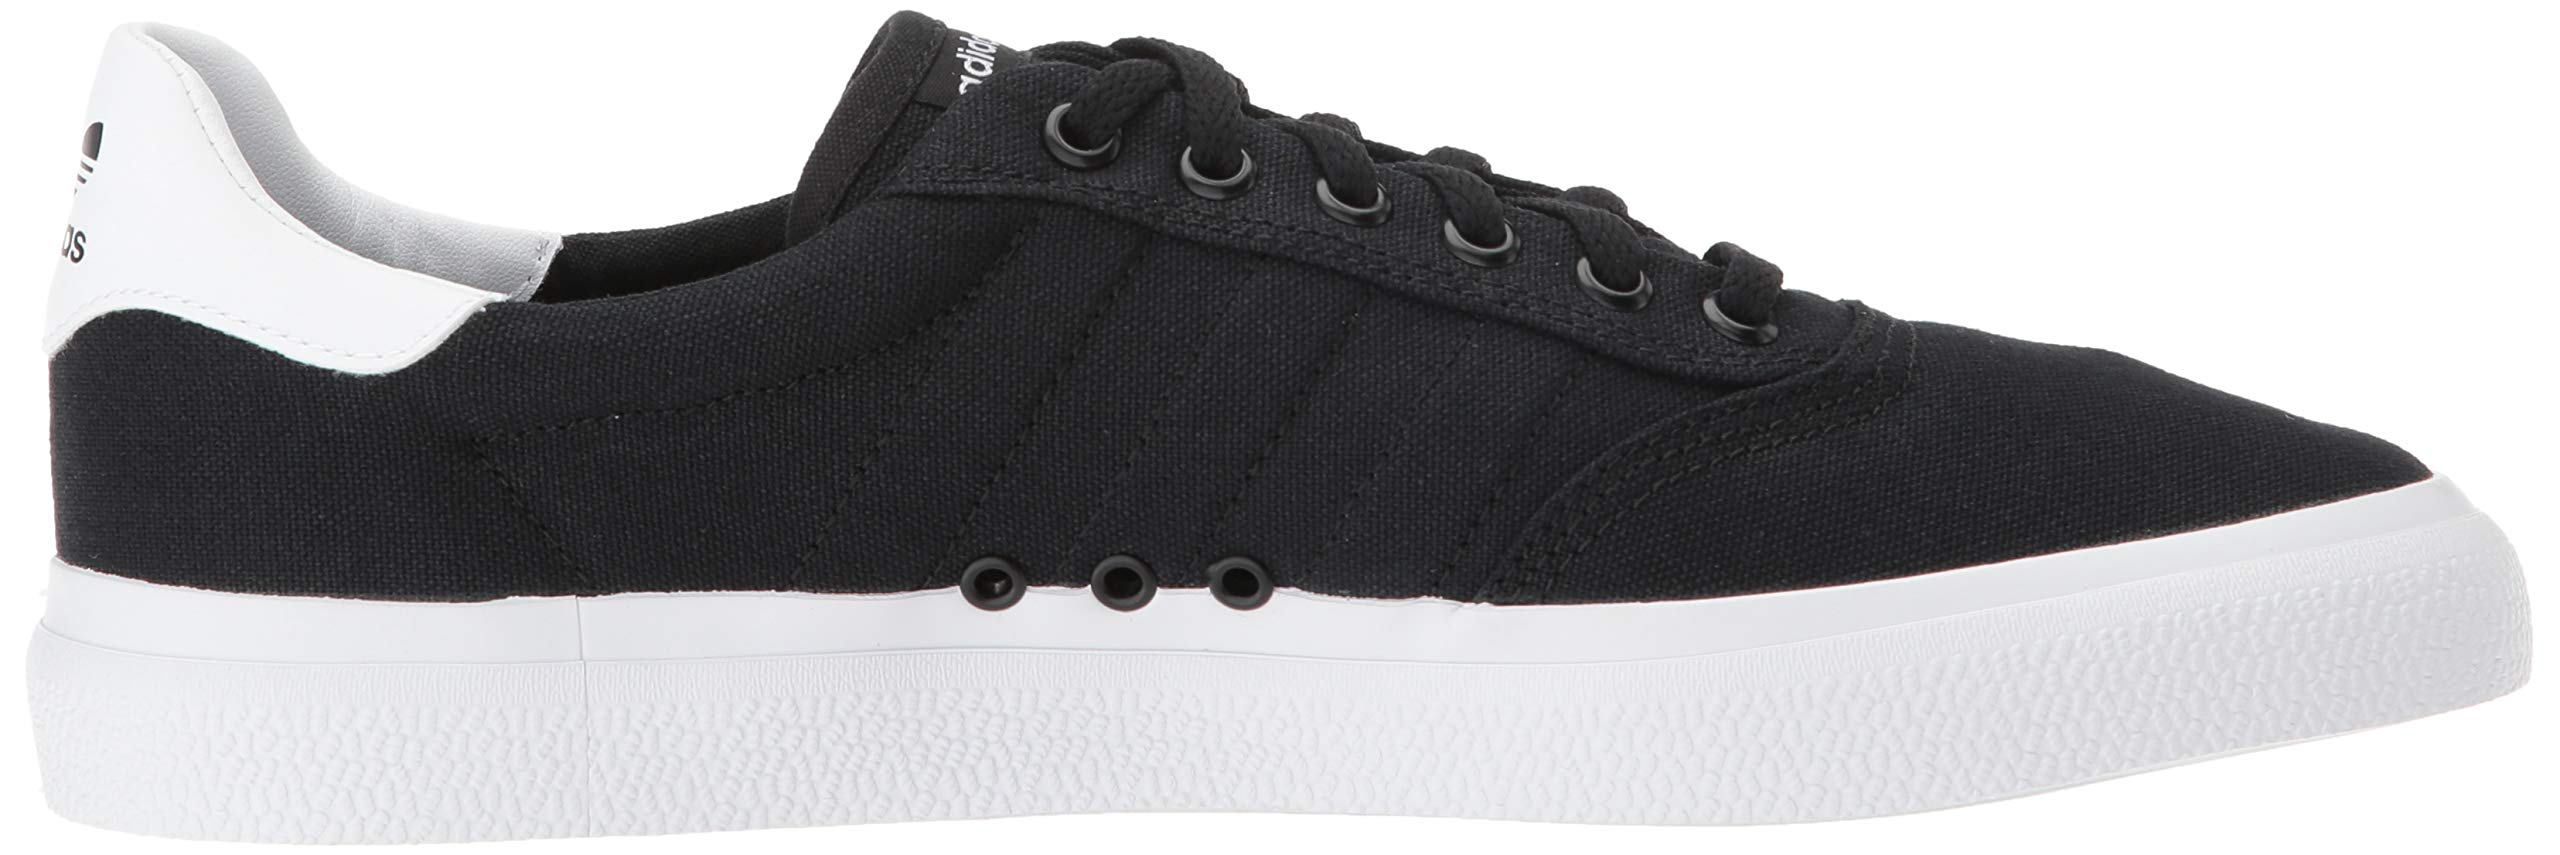 adidas Originals unisex-adult Black/White, 3 MC Skate Shoe 6.5 M US by adidas Originals (Image #7)